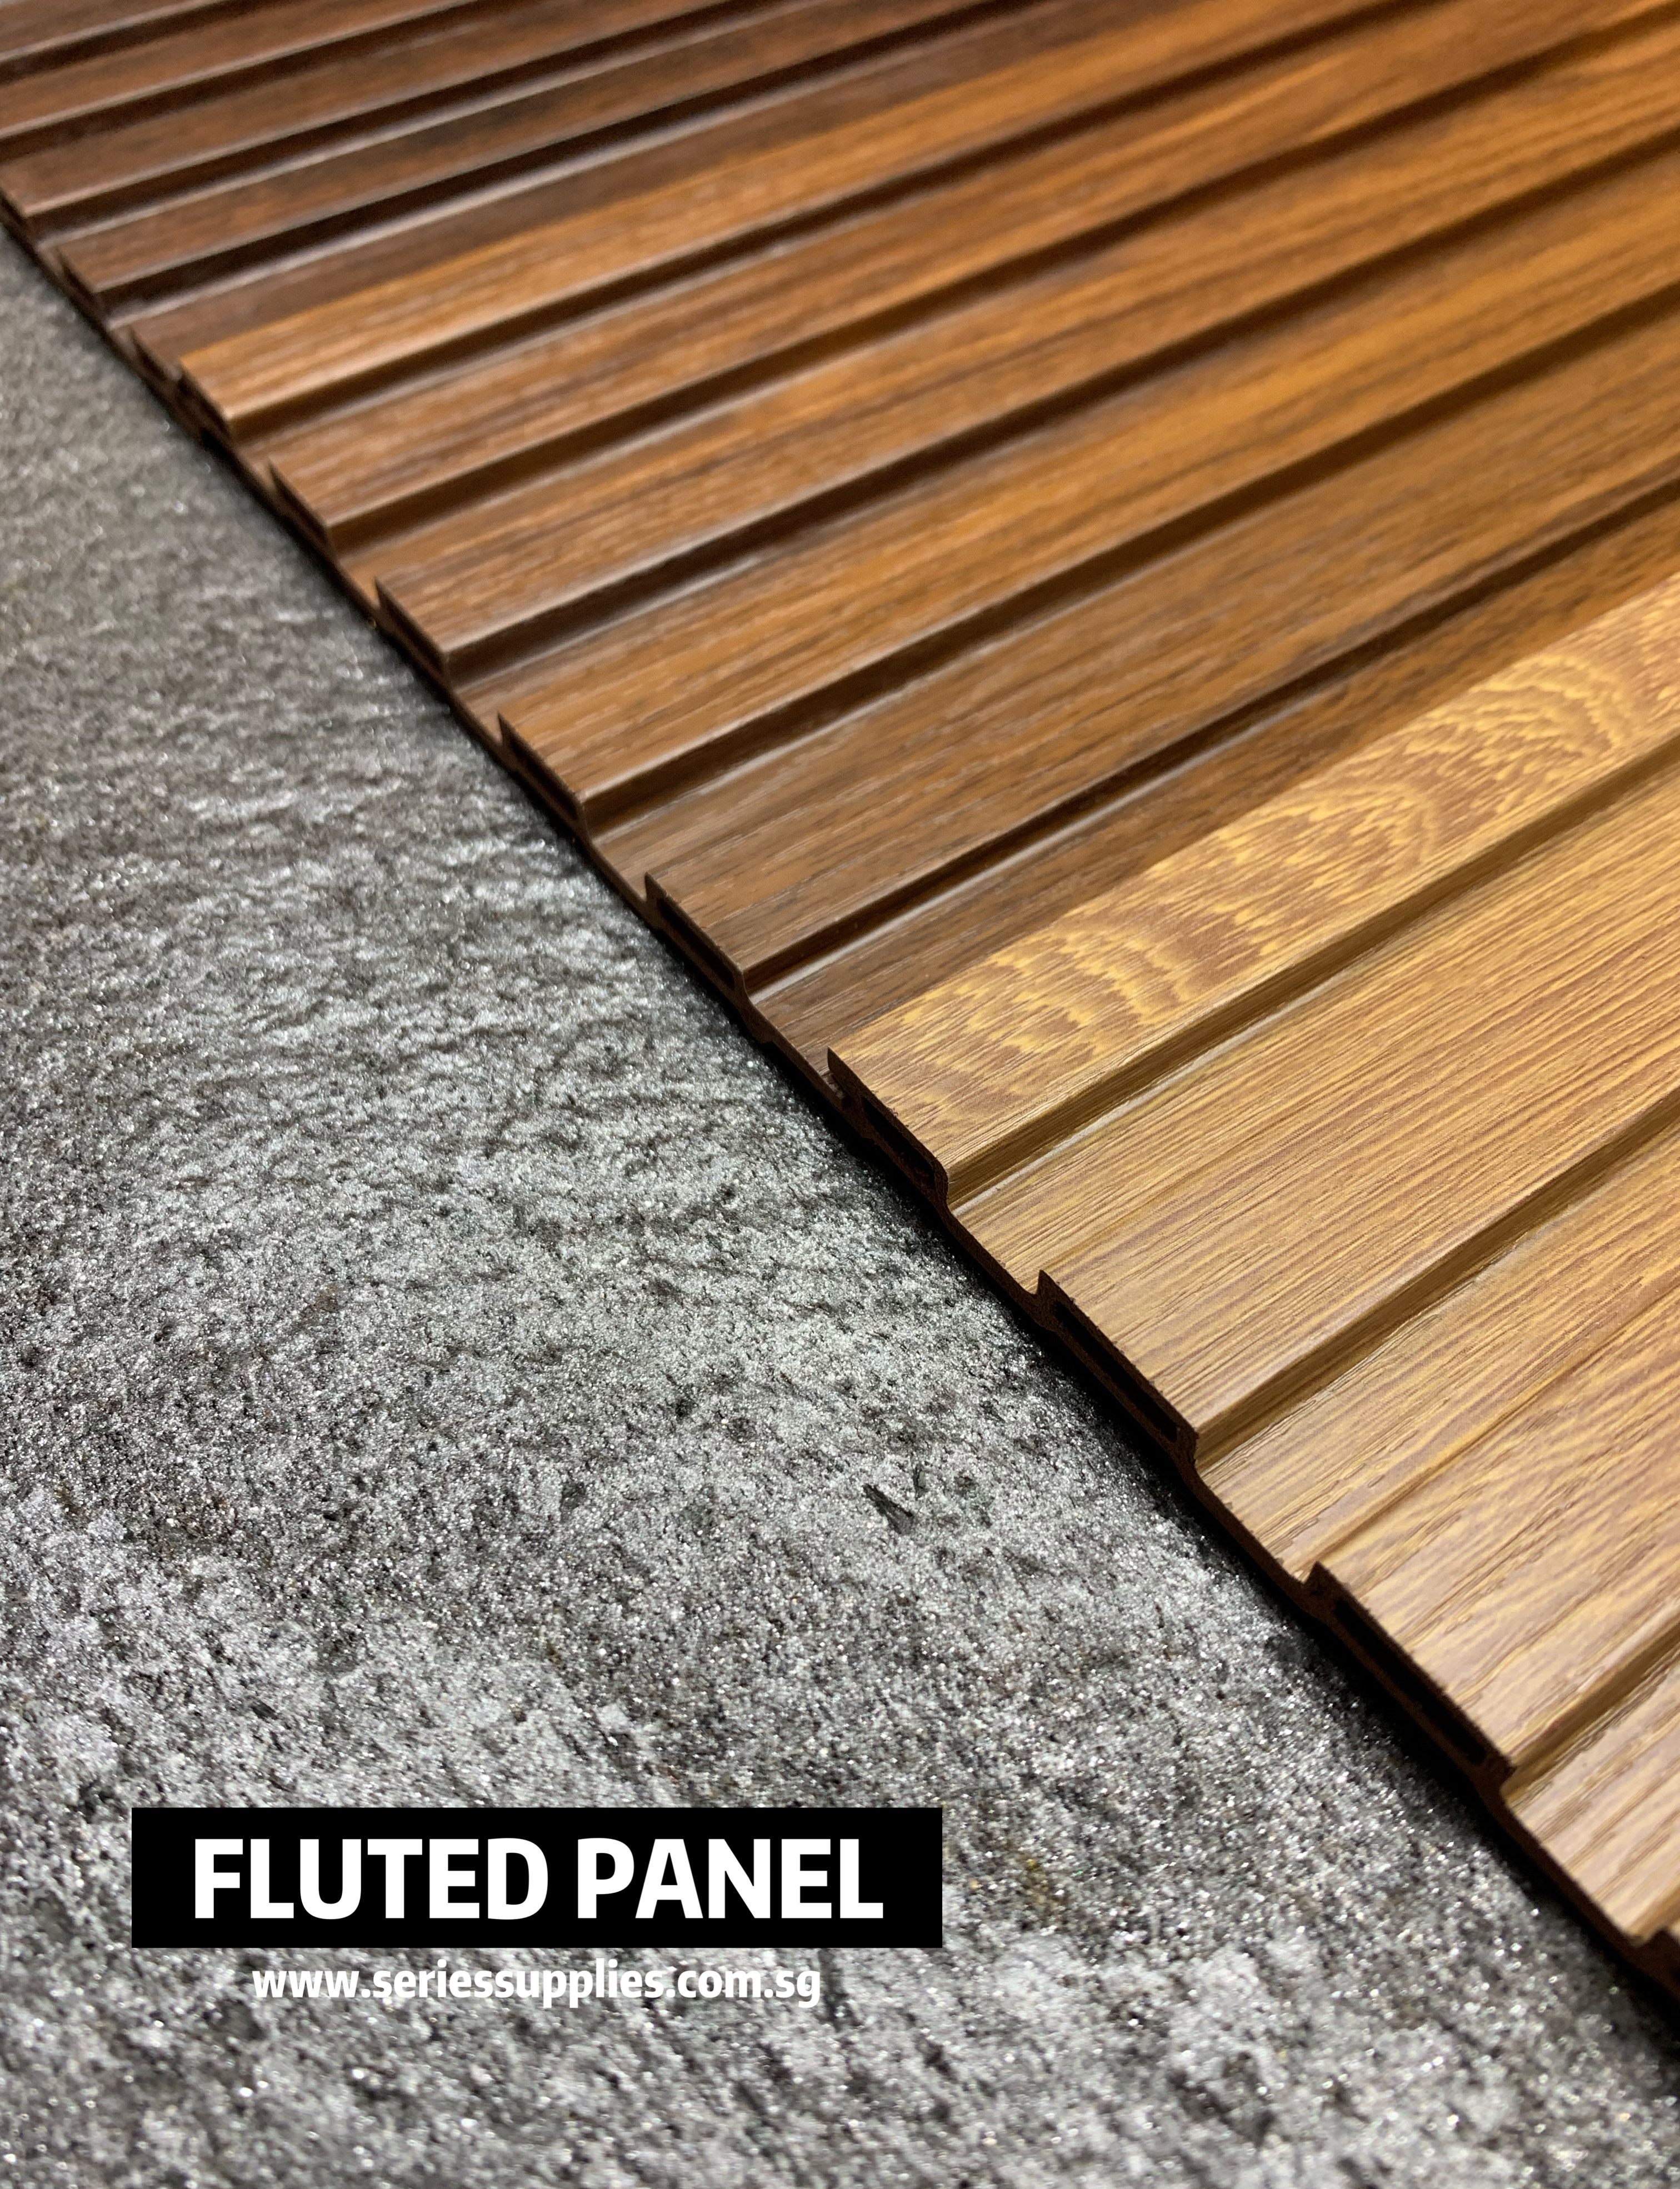 Fluted Wall Panel Wood Plastic Composite Wall Paneling Wall Design